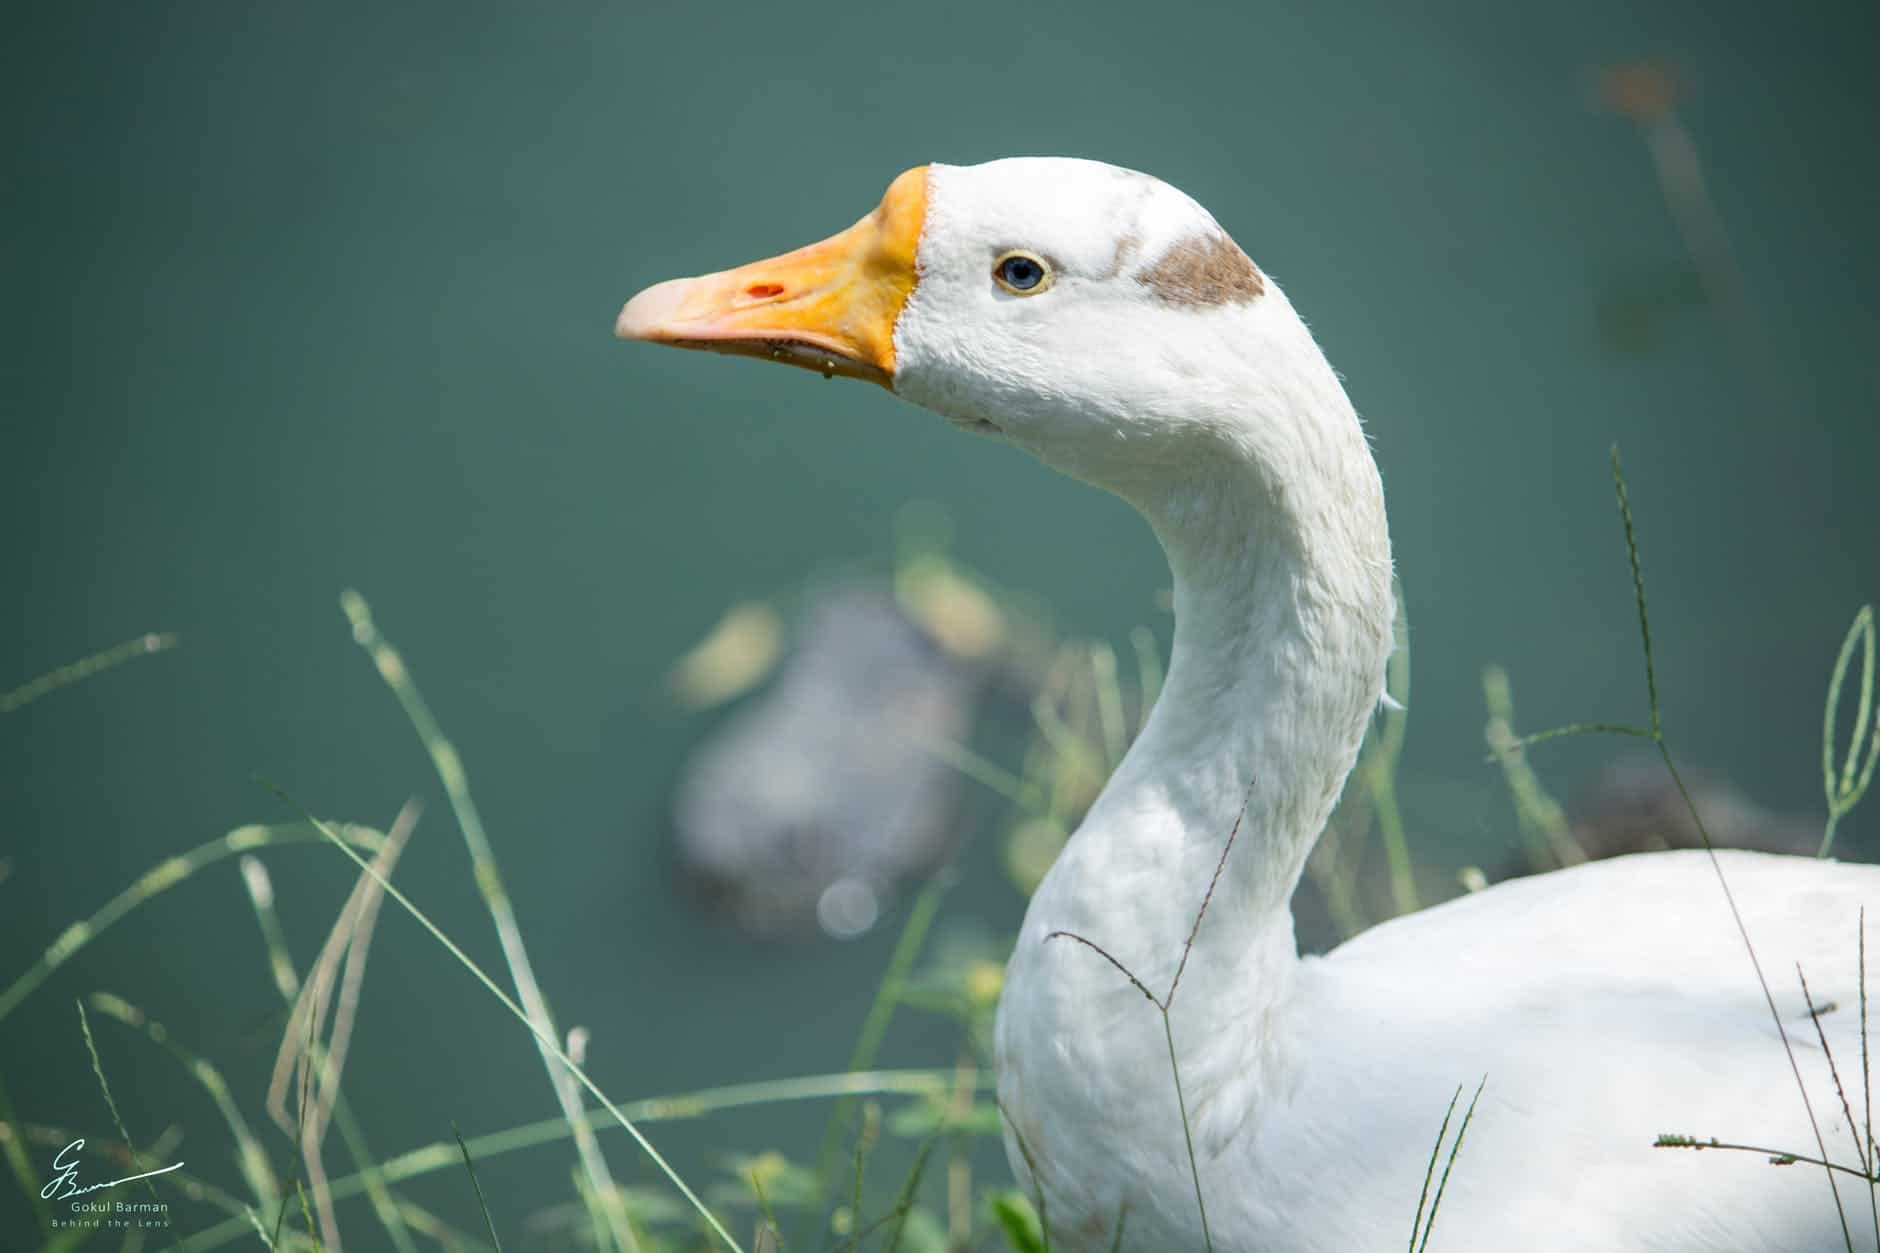 What are the interesting facts of Goose?